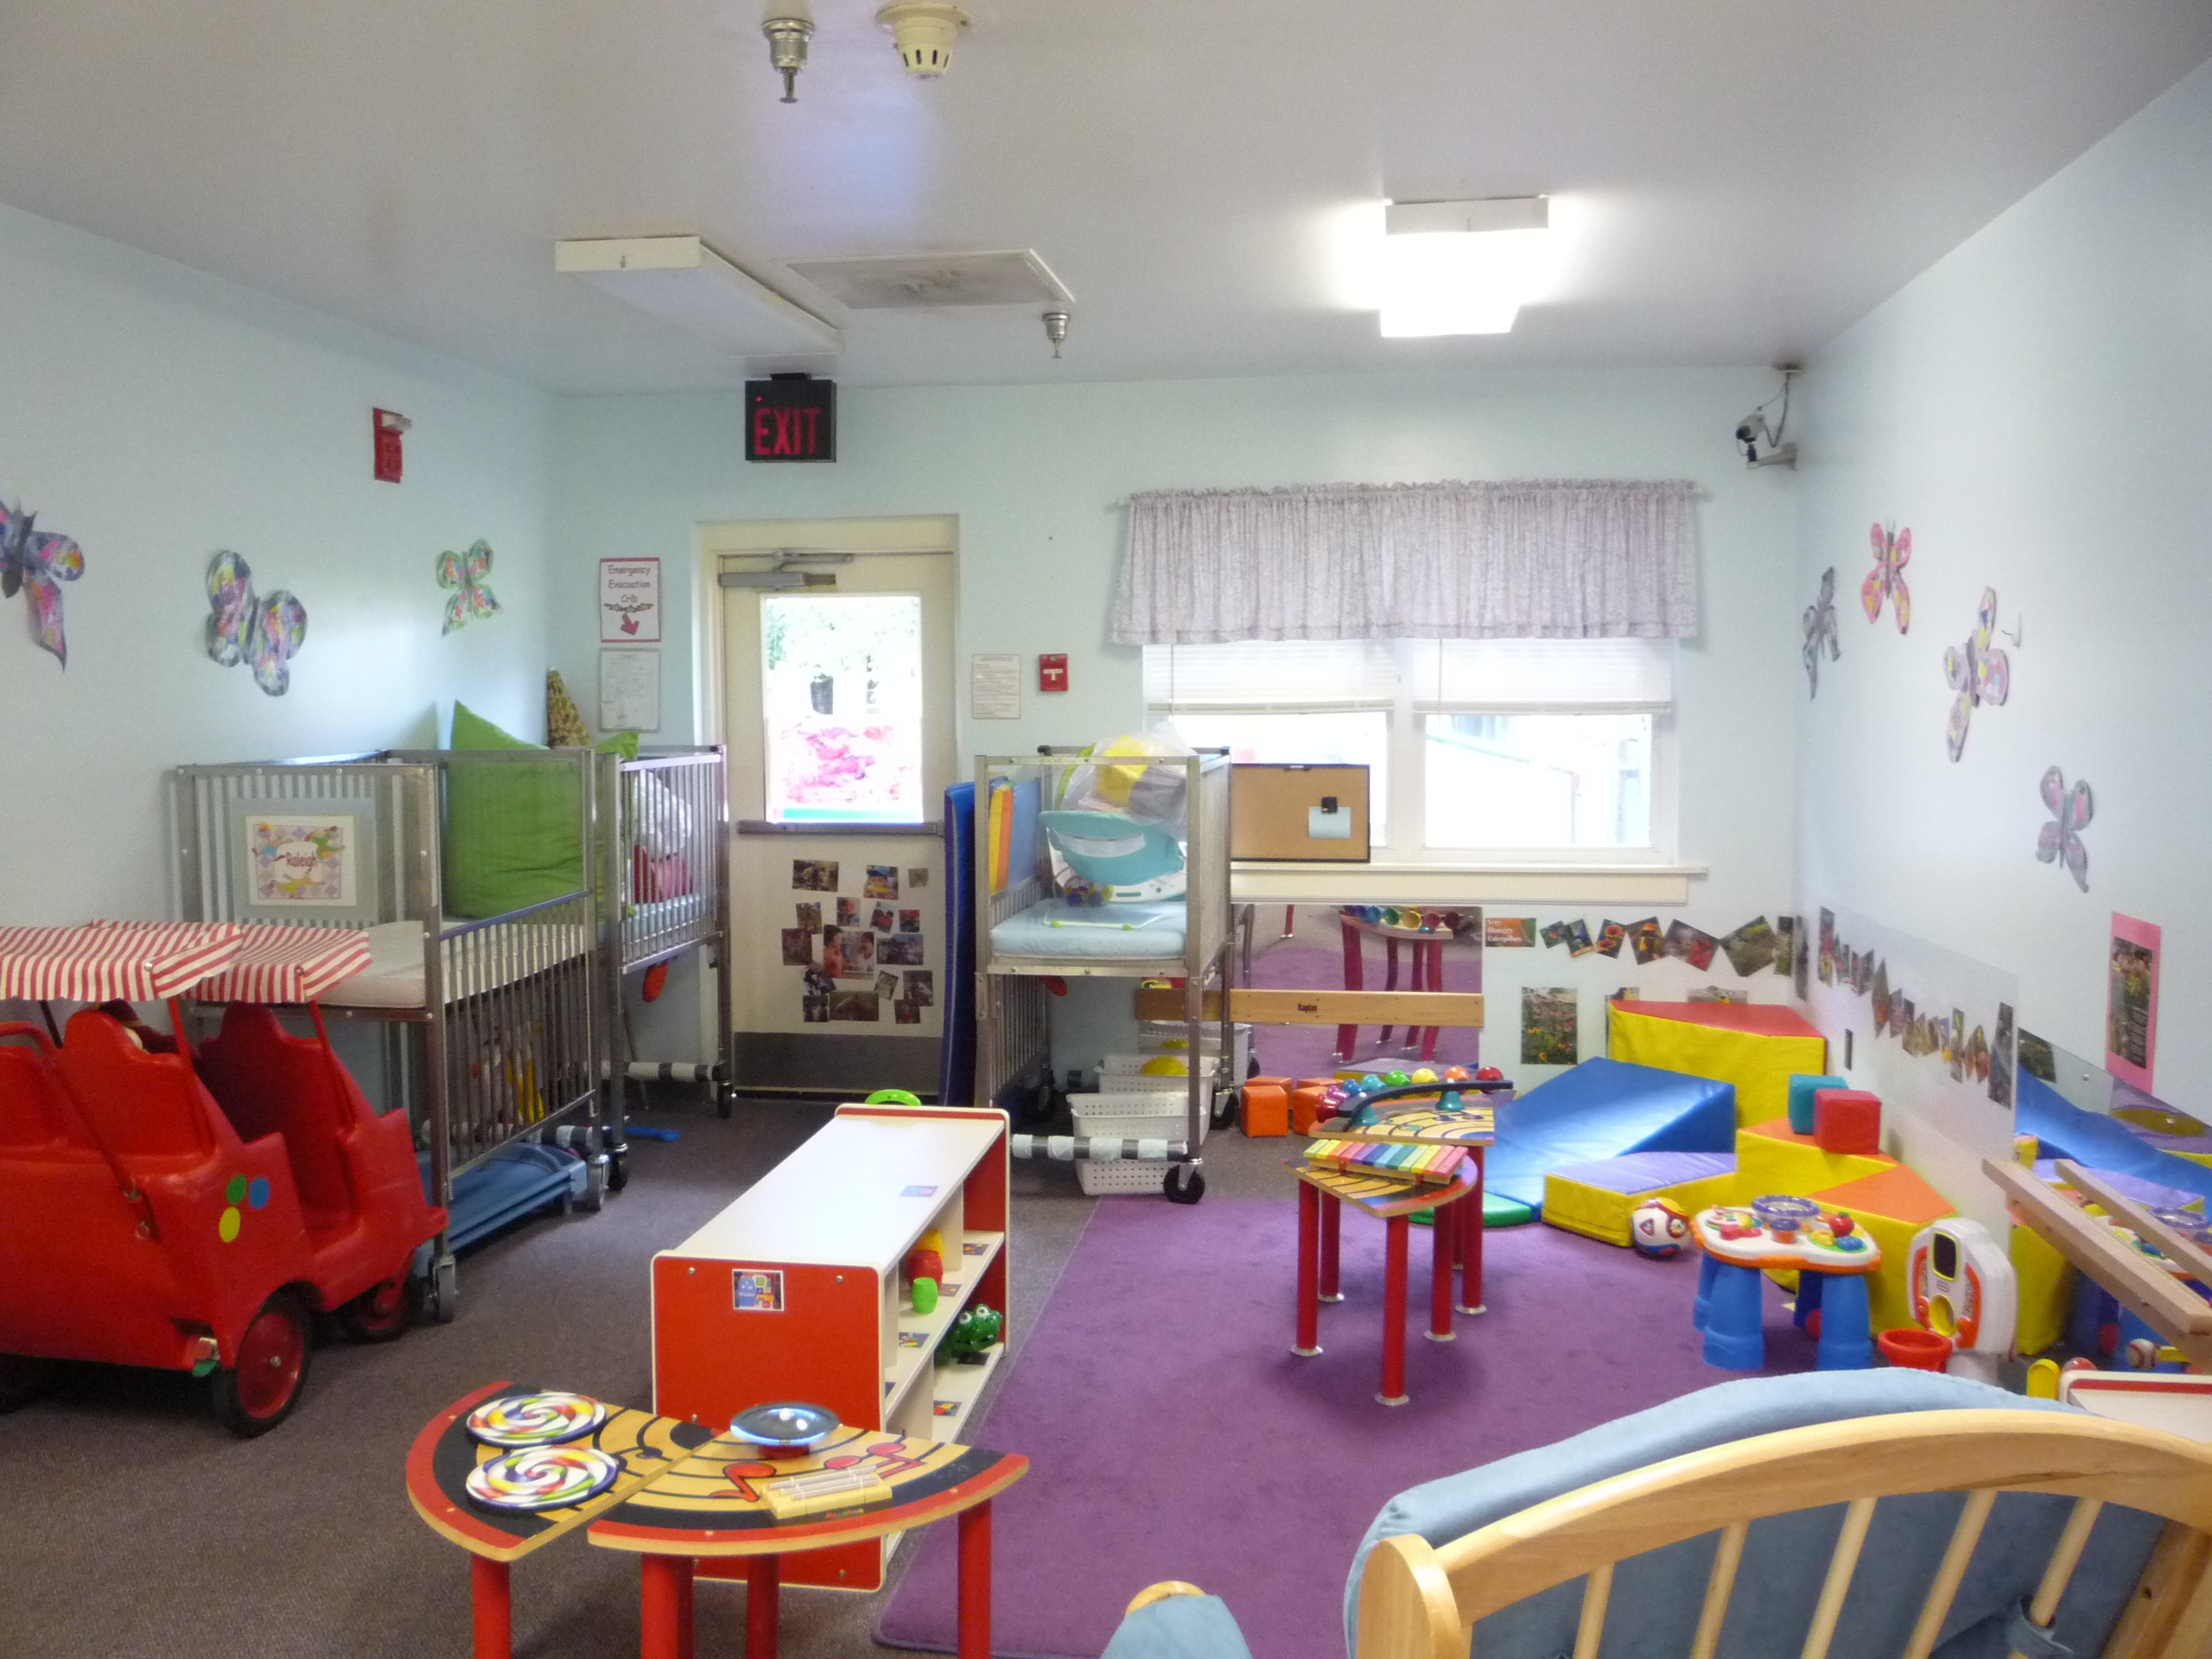 a project childcare centers Building child care project overview child care center and family child care home providers throughout the state who are either involved in or interested in doing a facilities development project technical assistance providers such as resource and referral agencies.